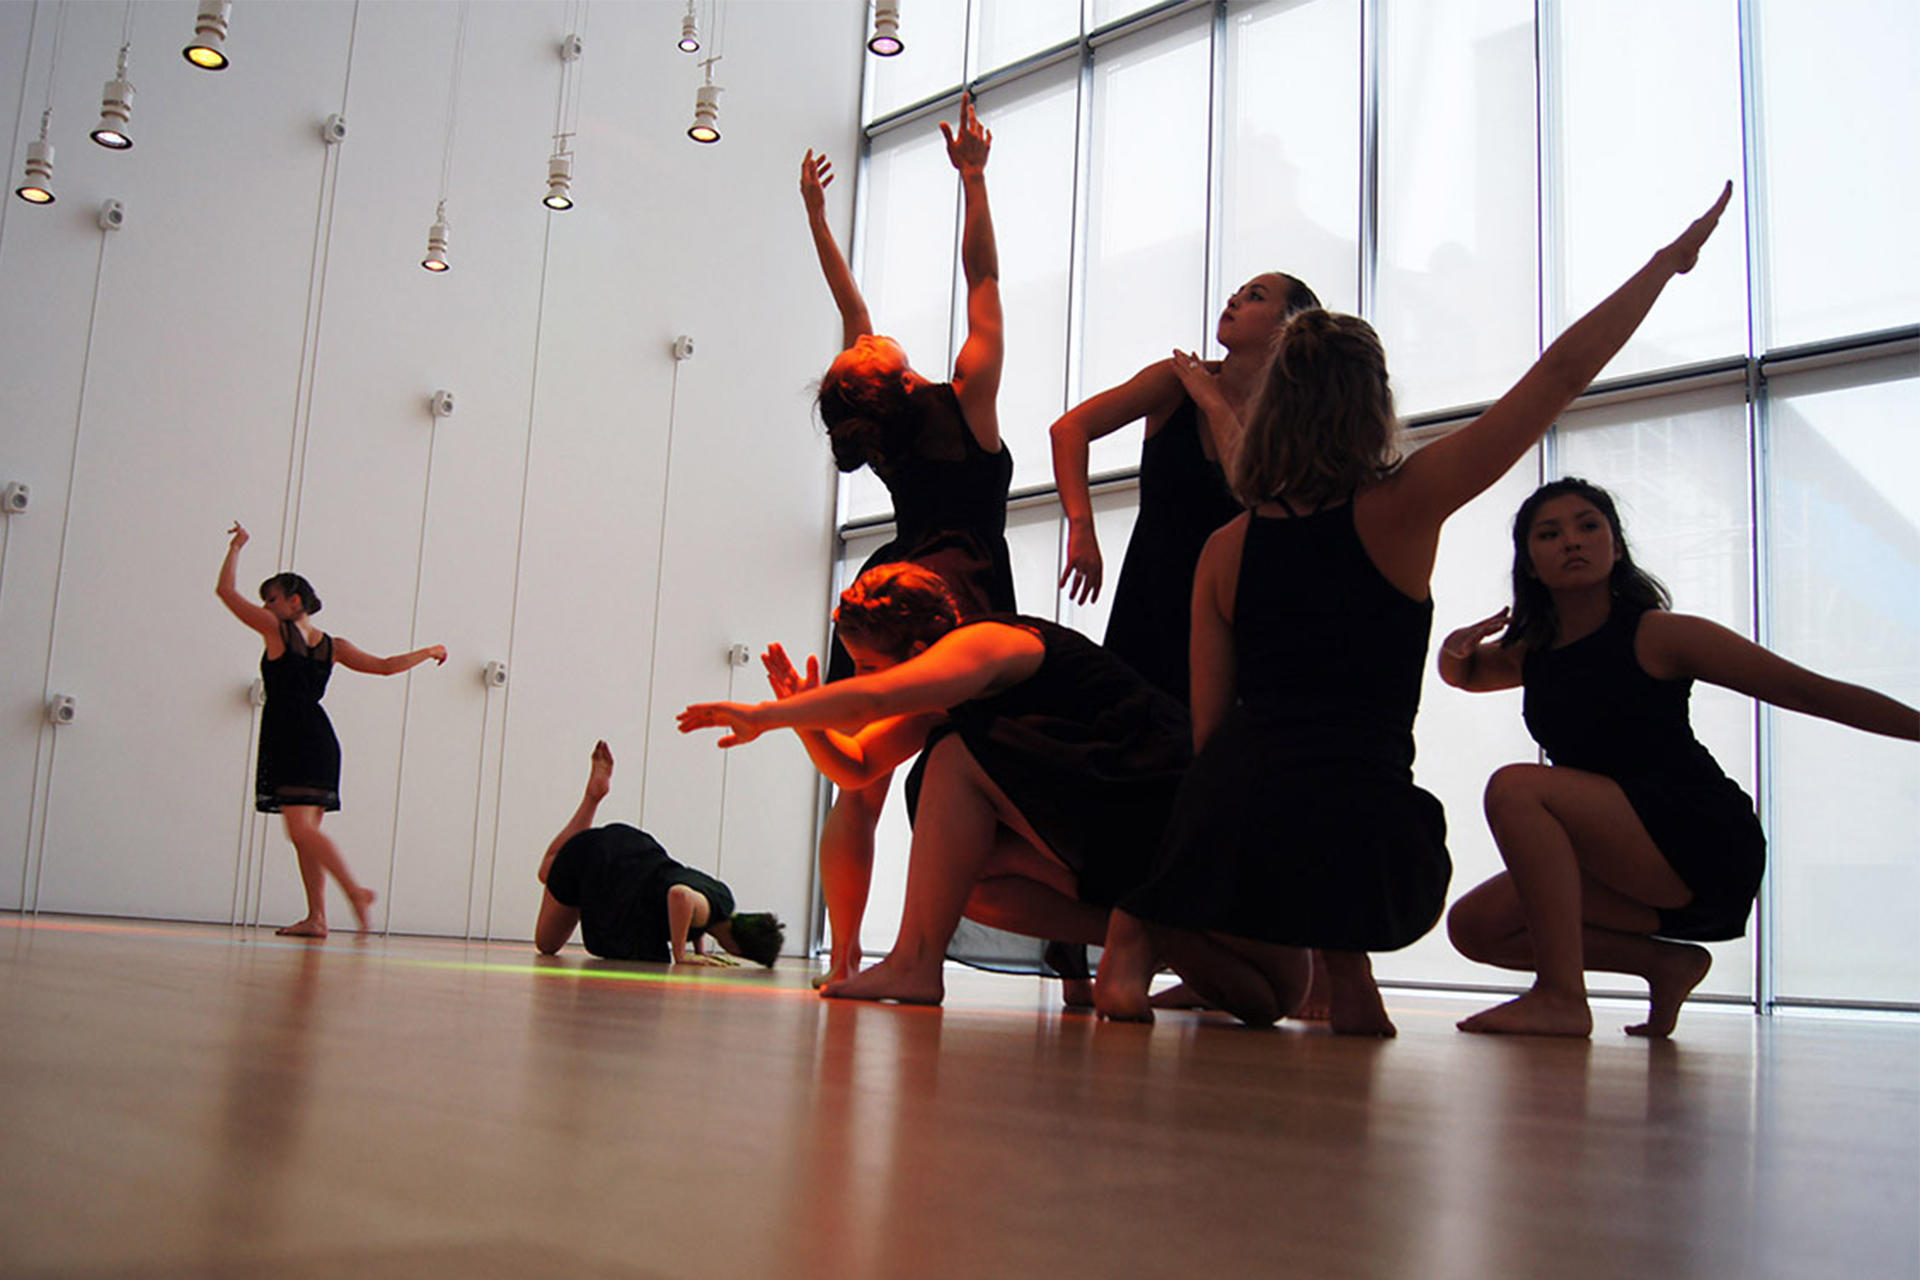 KAIROS Dance Theater performing in Hostetter Gallery. Photo by Golden Lion Photography.